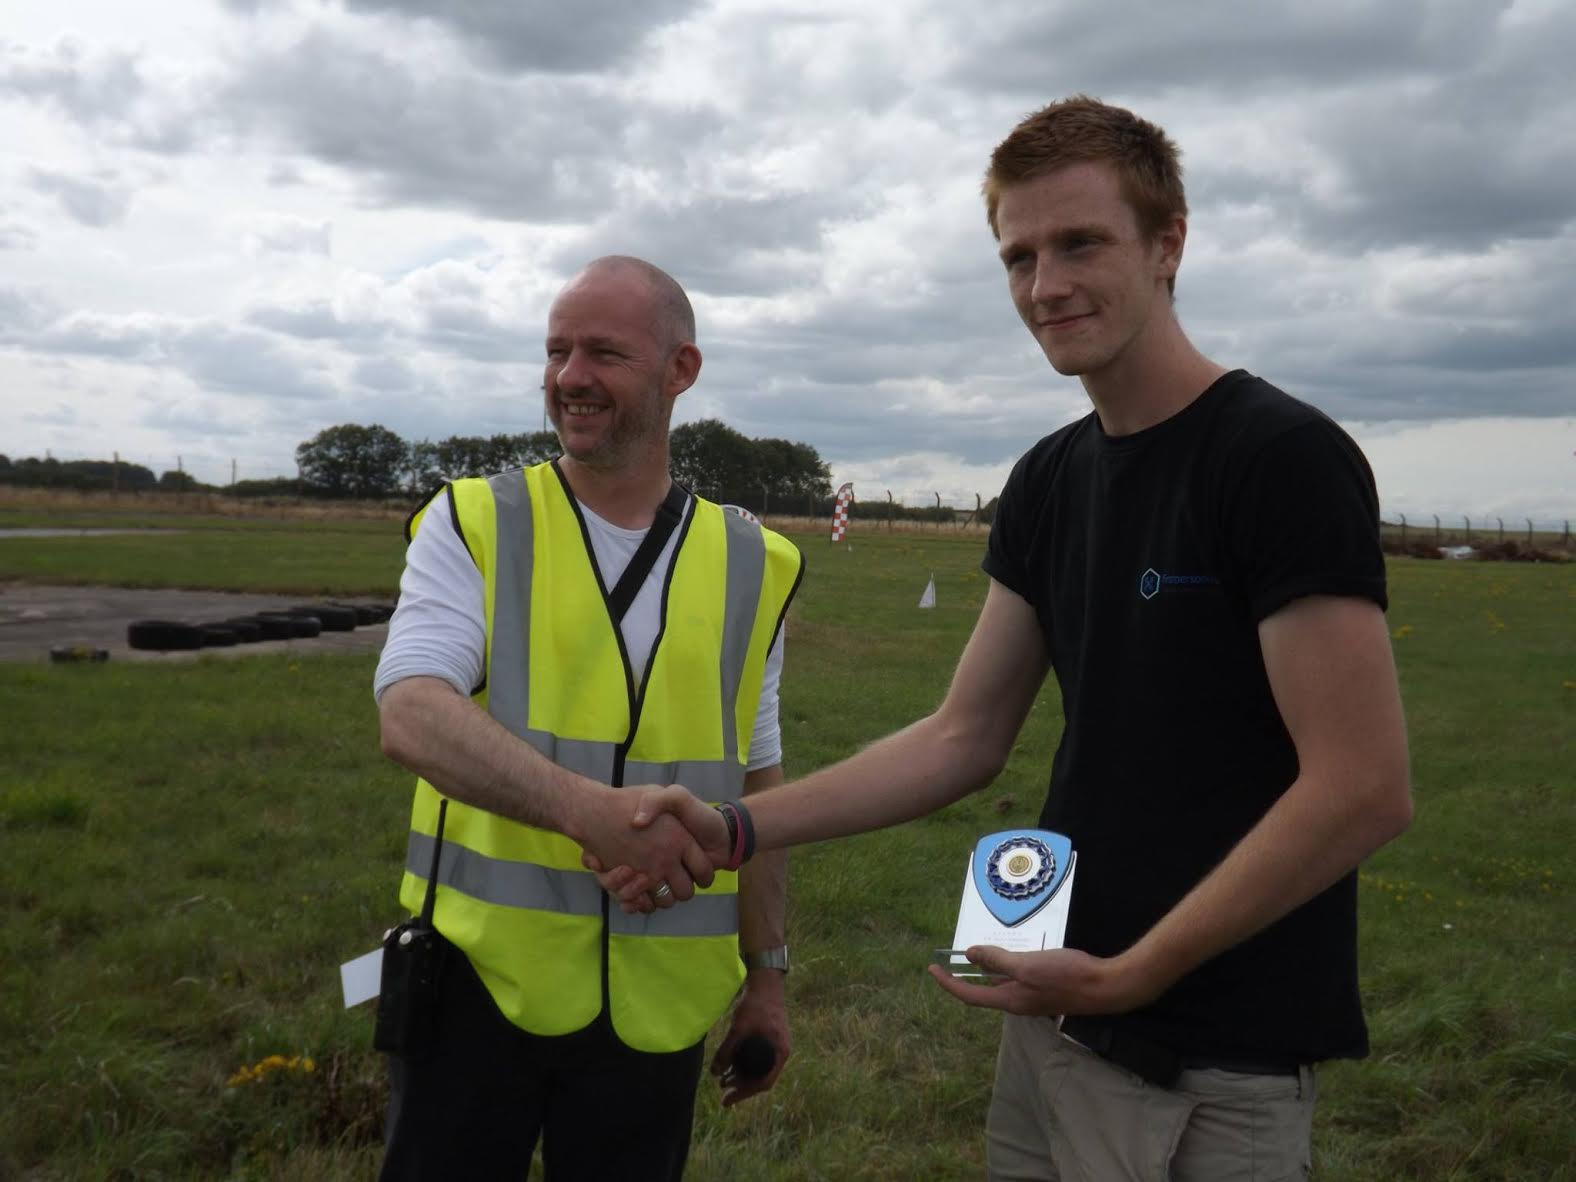 Drone Doctor Dan being awarded the prize for UK Freestyle Champion